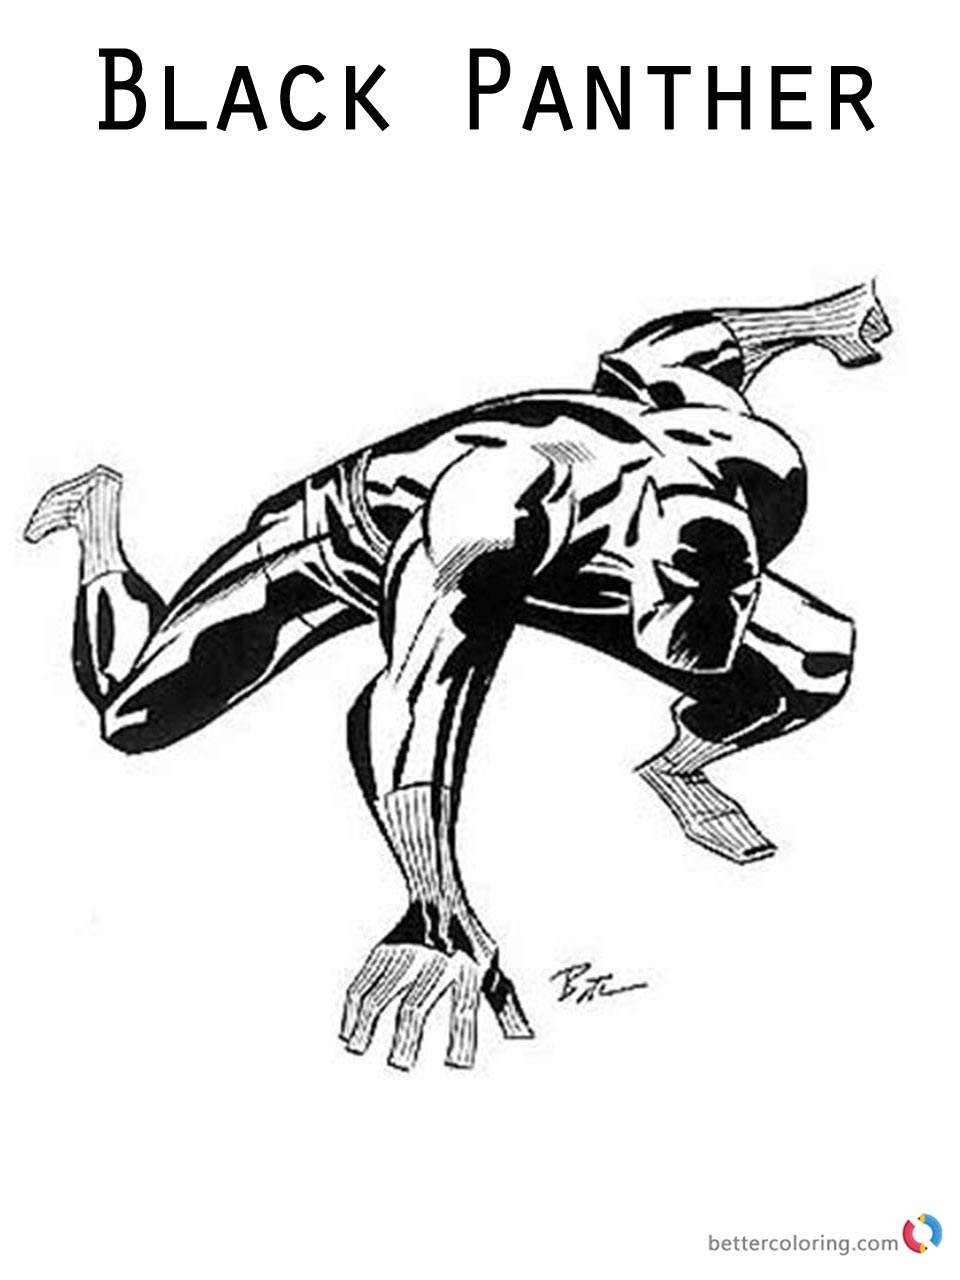 Black Panther Coloring Pages Marvel Superhero Ready to